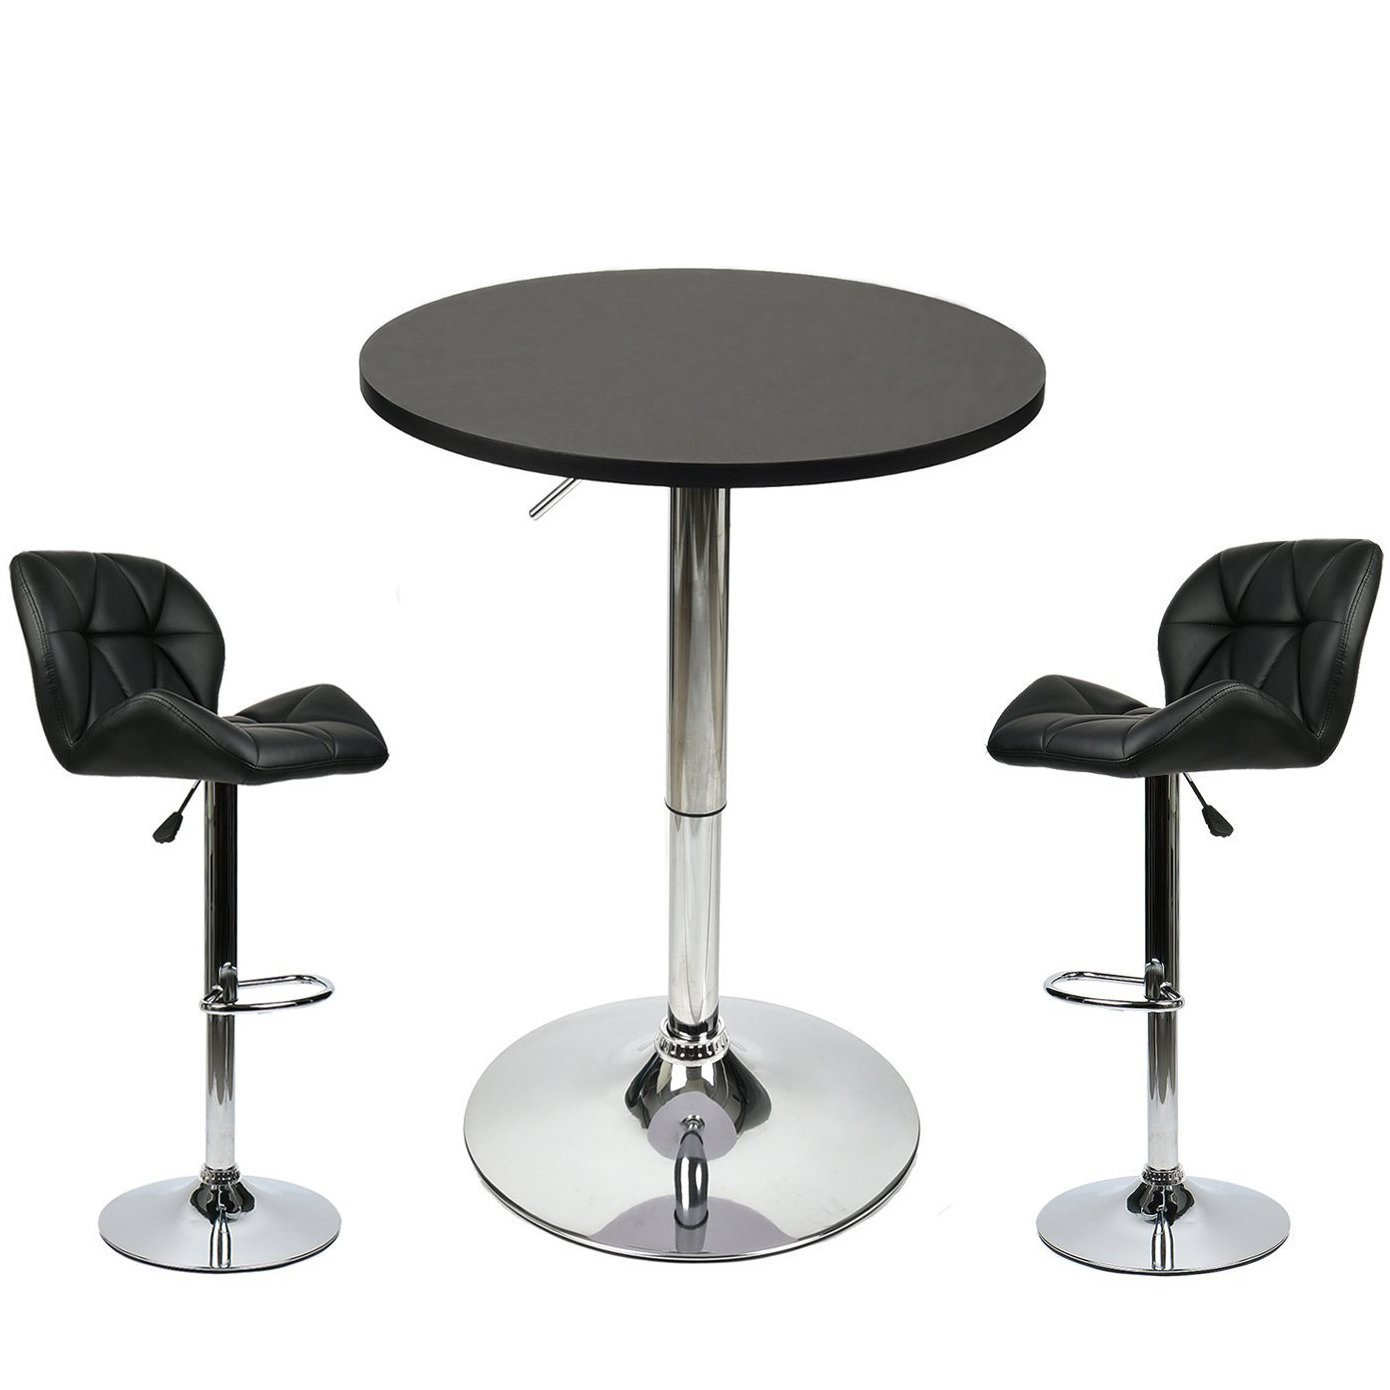 Bar Table with 2 Adjustable Swivel Stools Set - 3 Piece Pub Dining Kitchen Furniture (Black 2)